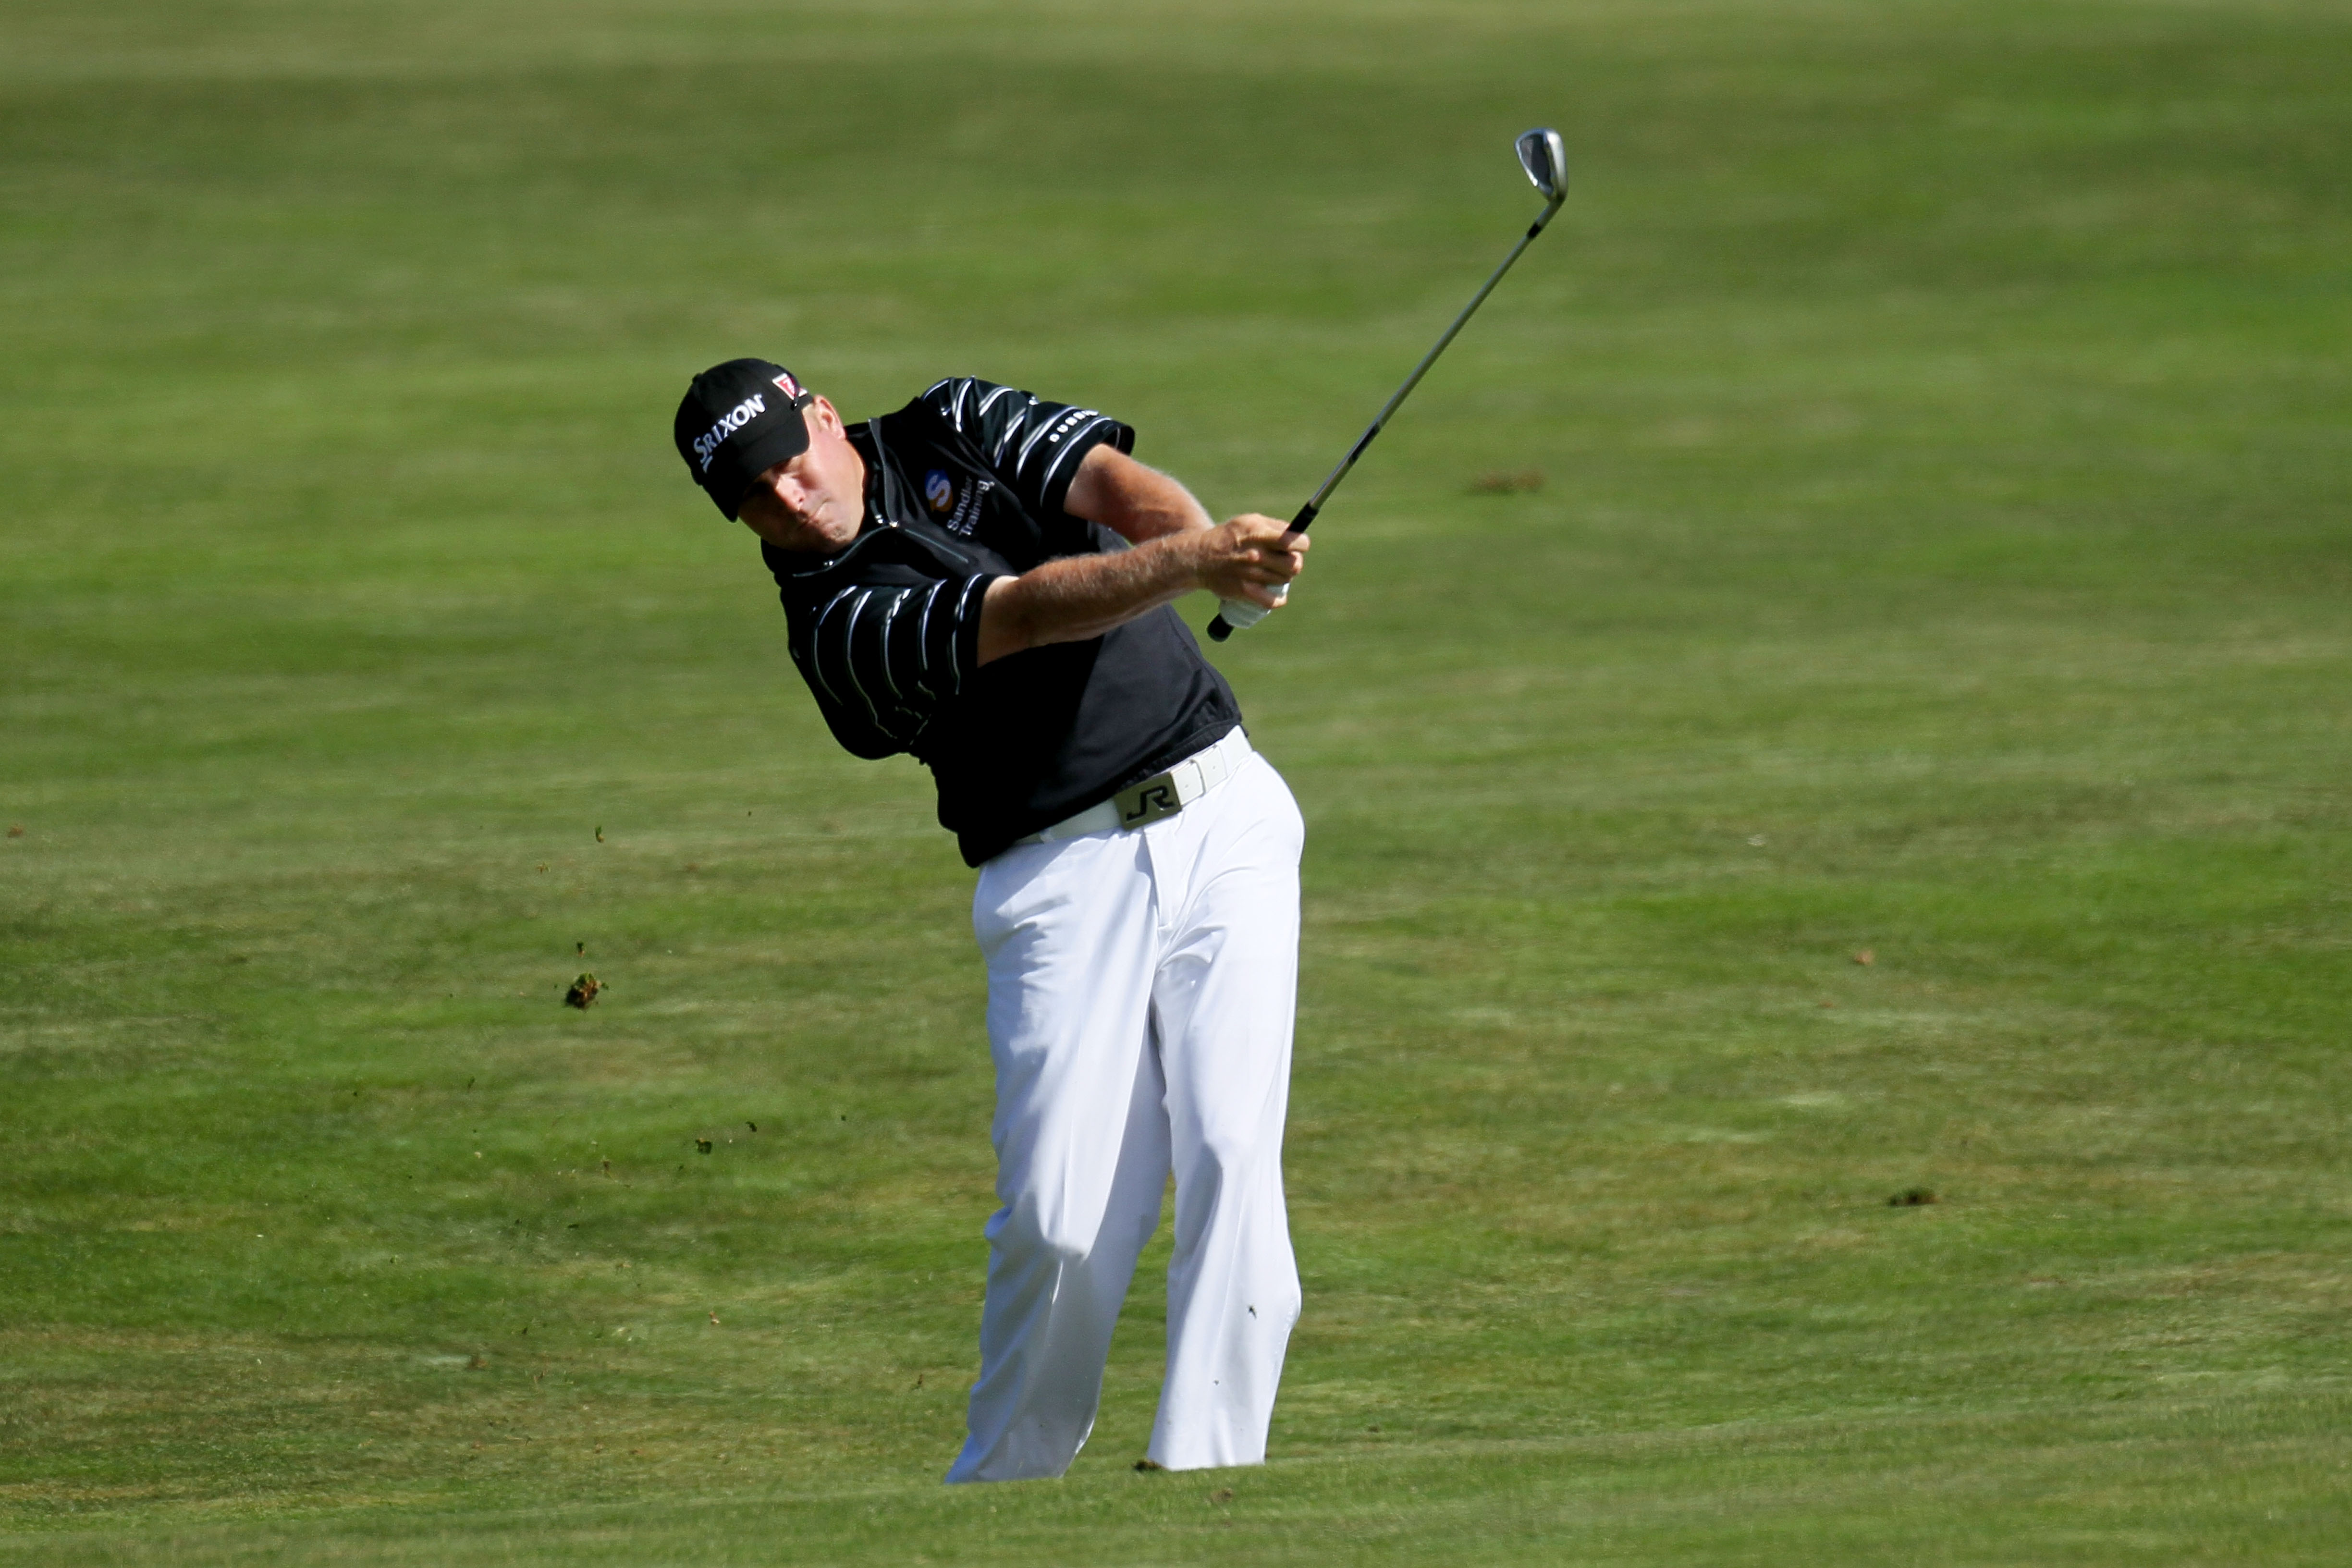 PEBBLE BEACH, CA - JUNE 17:  John Rollins plays his second shot on the 15th hole during the first round of the 110th U.S. Open at Pebble Beach Golf Links on June 17, 2010 in Pebble Beach, California.  (Photo by Stephen Dunn/Getty Images)